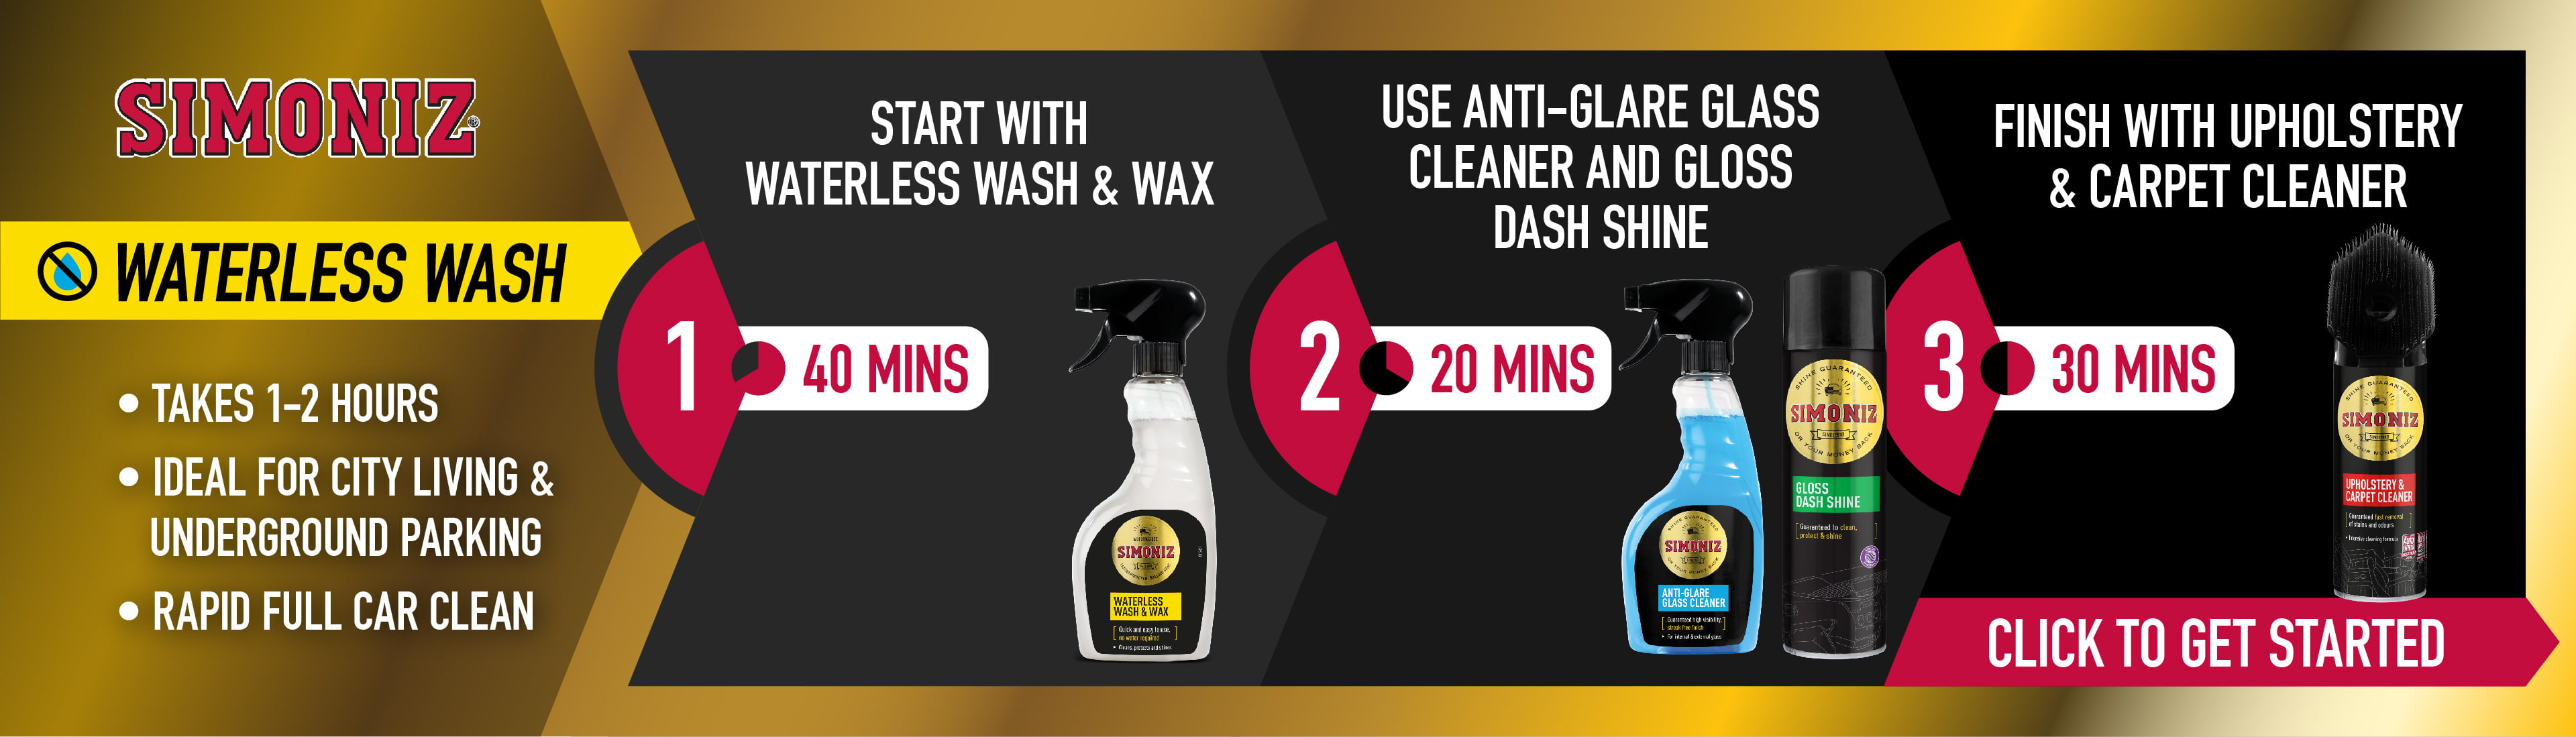 Simoniz Waterless Wash Guide